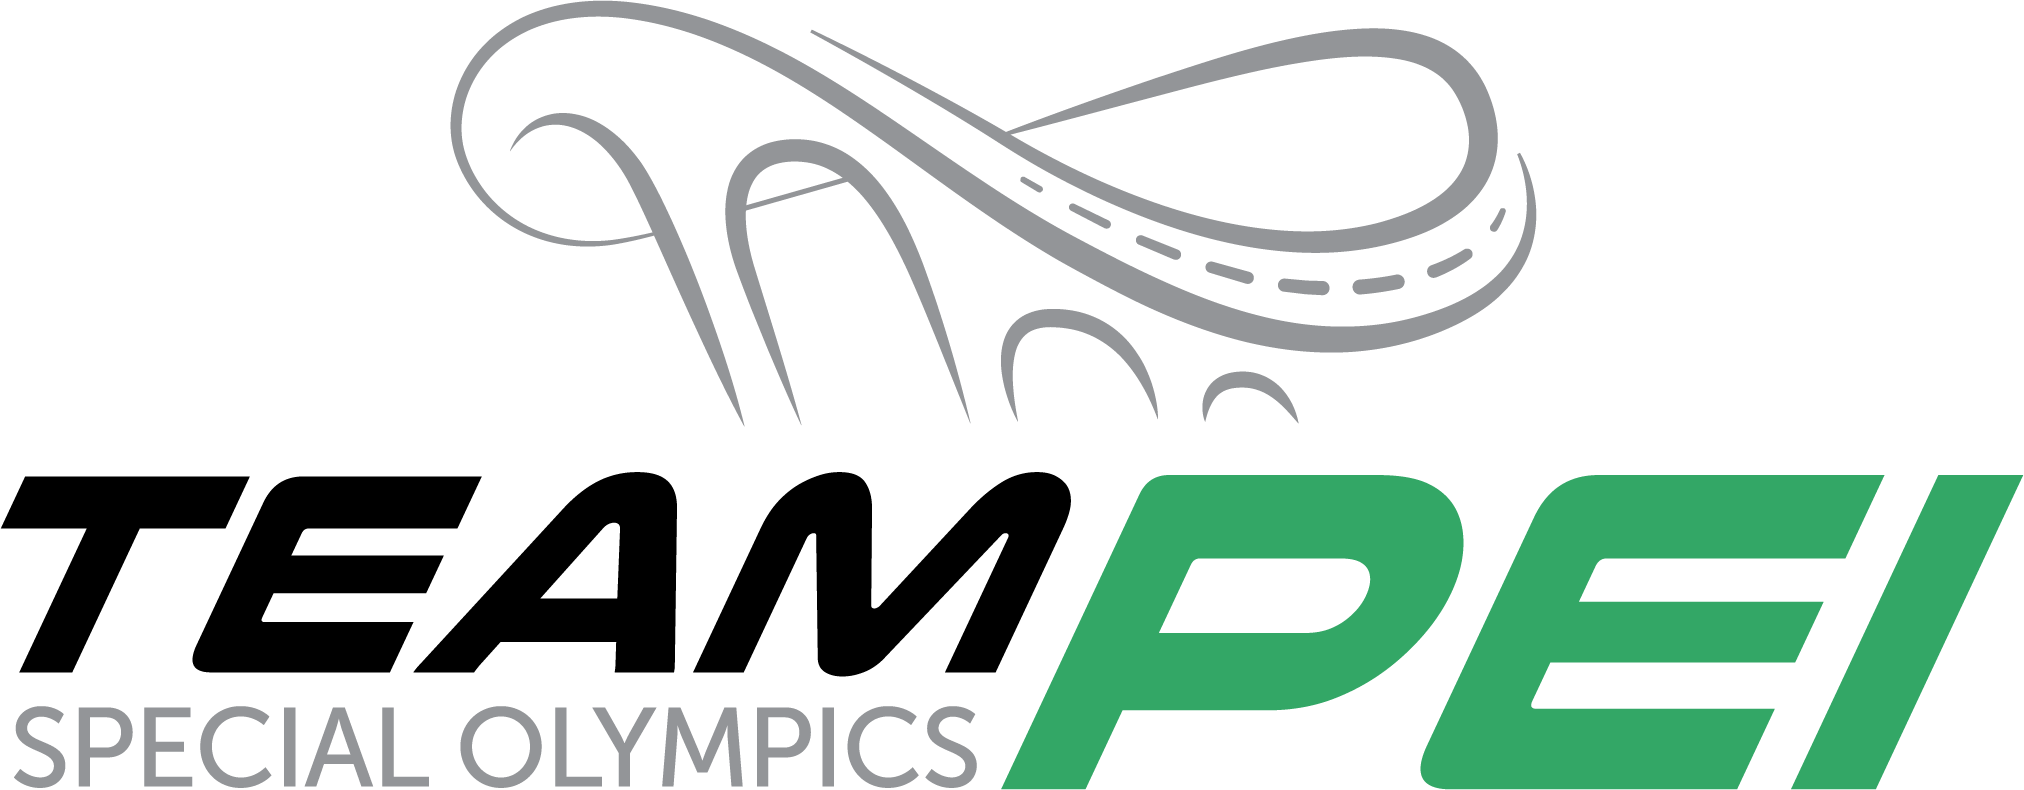 games schedule | special olympics canada